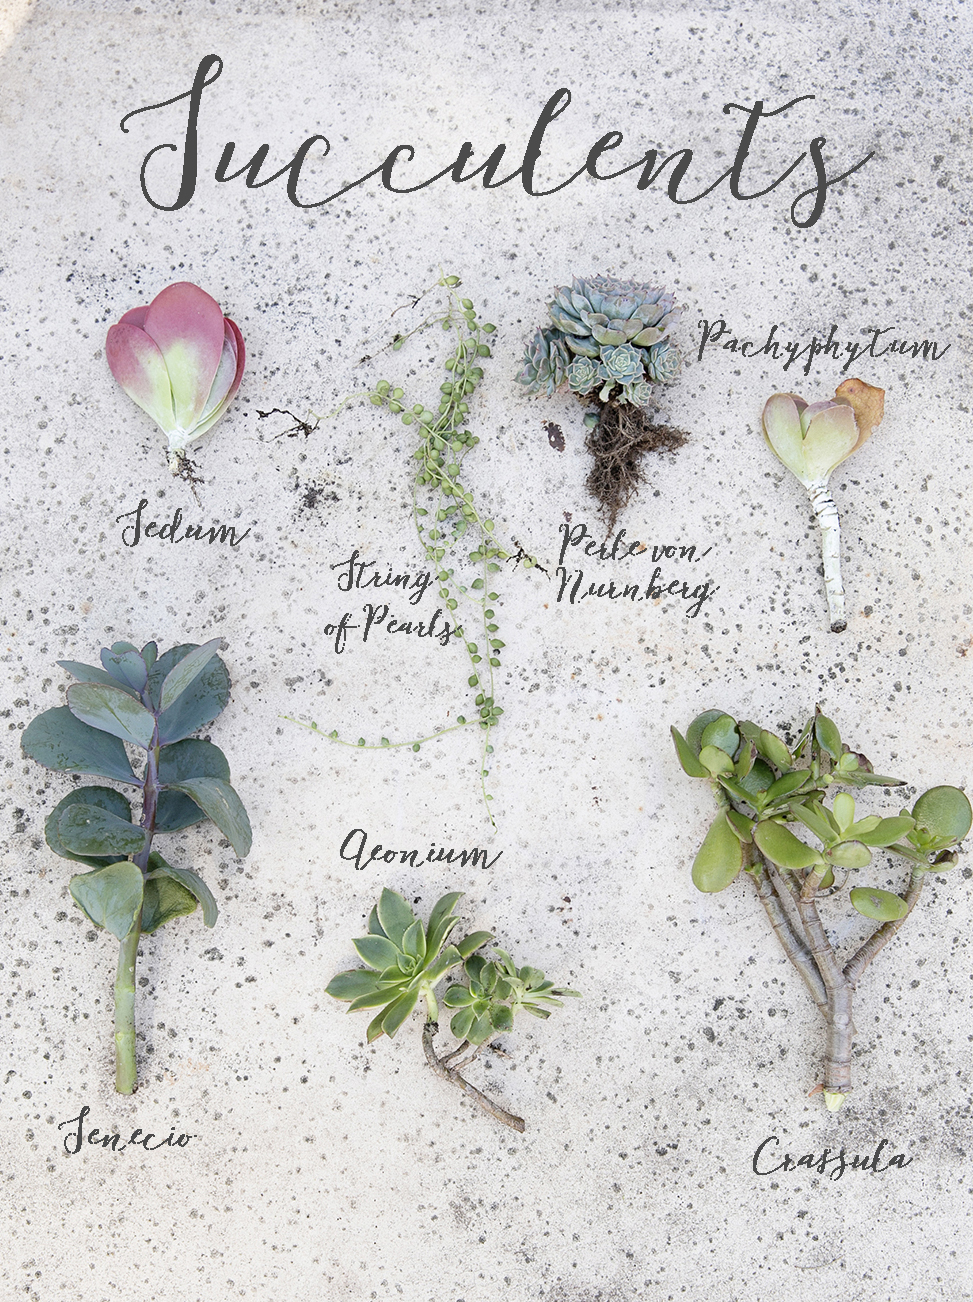 Succulents 001 names.jpg